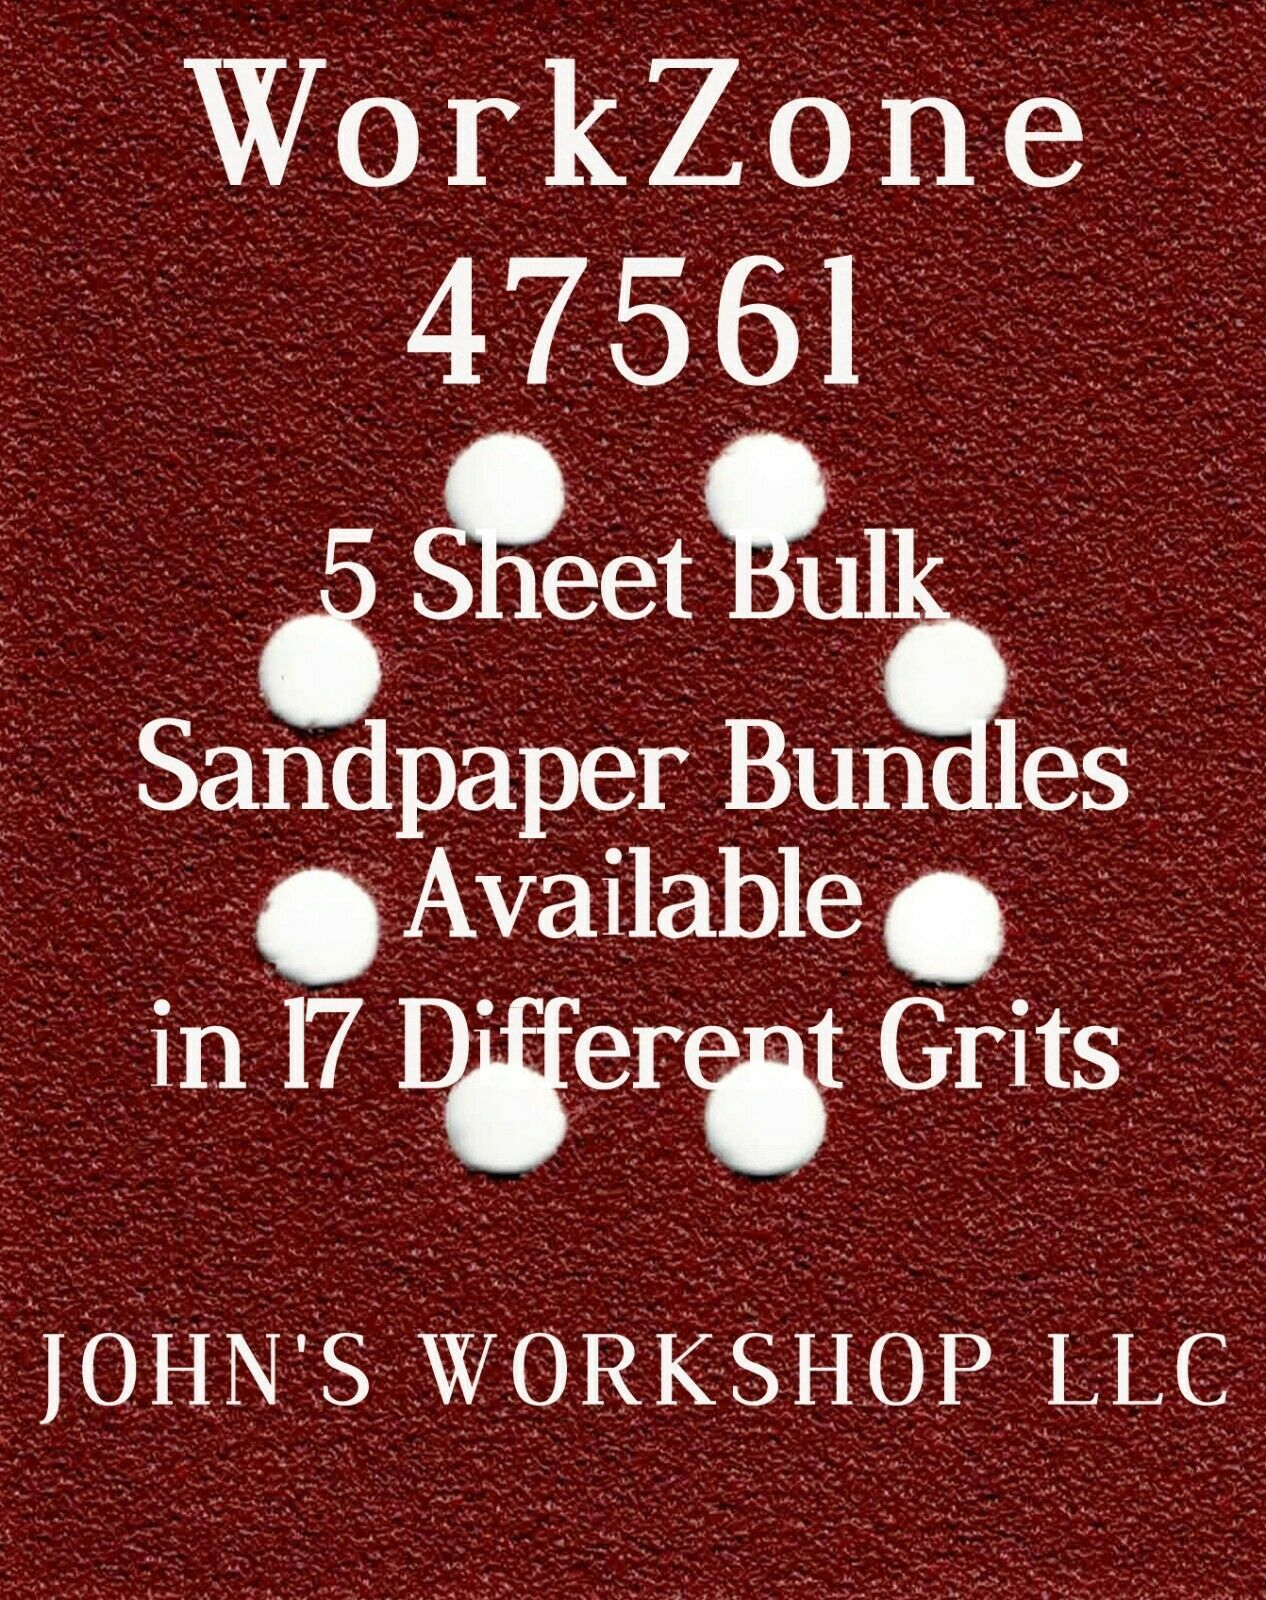 Primary image for WorkZone 47561 - 1/4 Sheet - 17 Grits - No-Slip - 5 Sandpaper Bulk Bundles